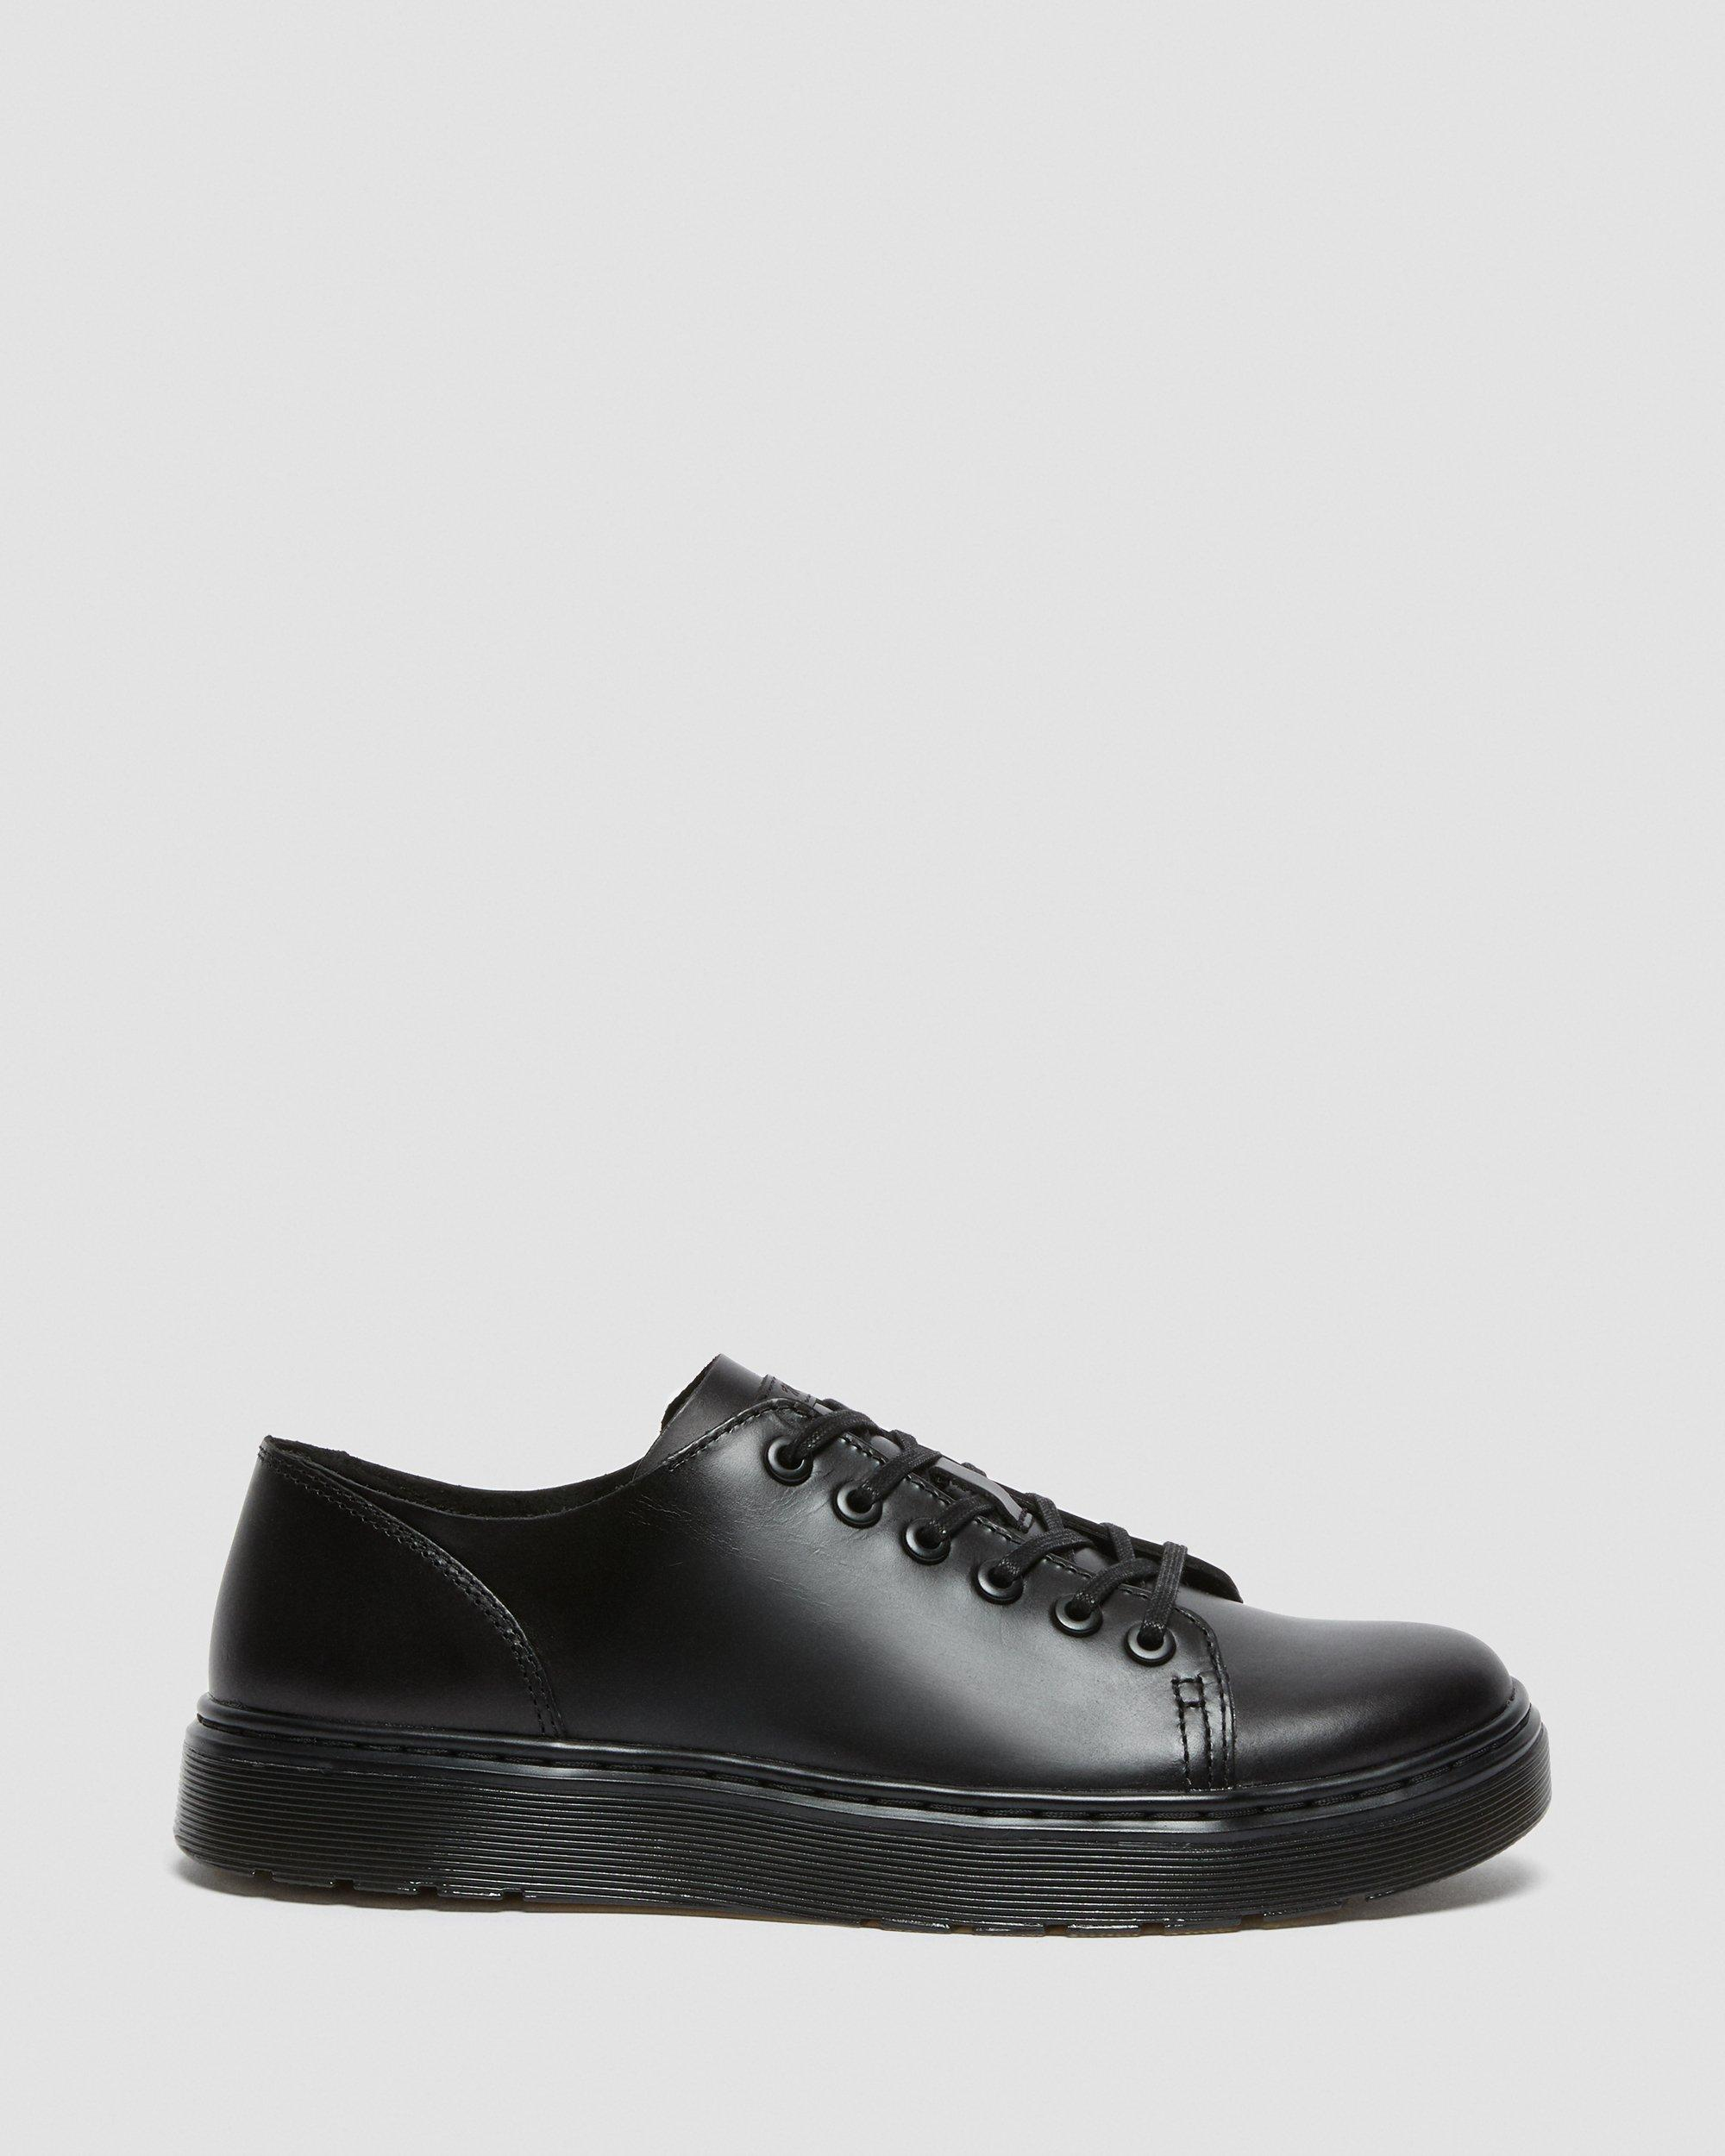 DANTE LEATHER LACE UP SHOES | Dr